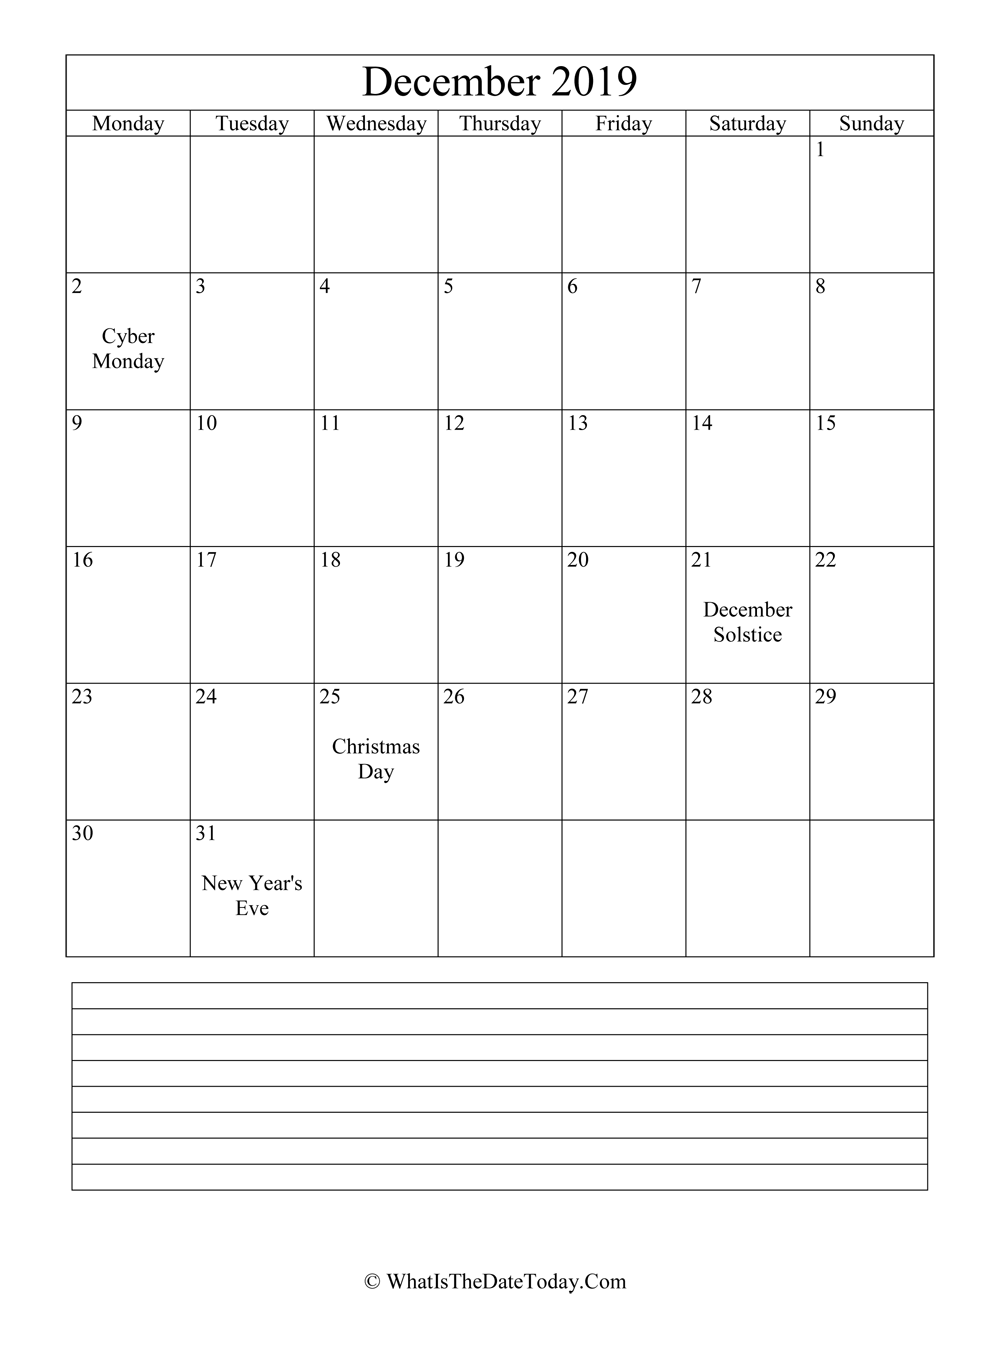 december 2019 calendar editable with notes in vertical layout